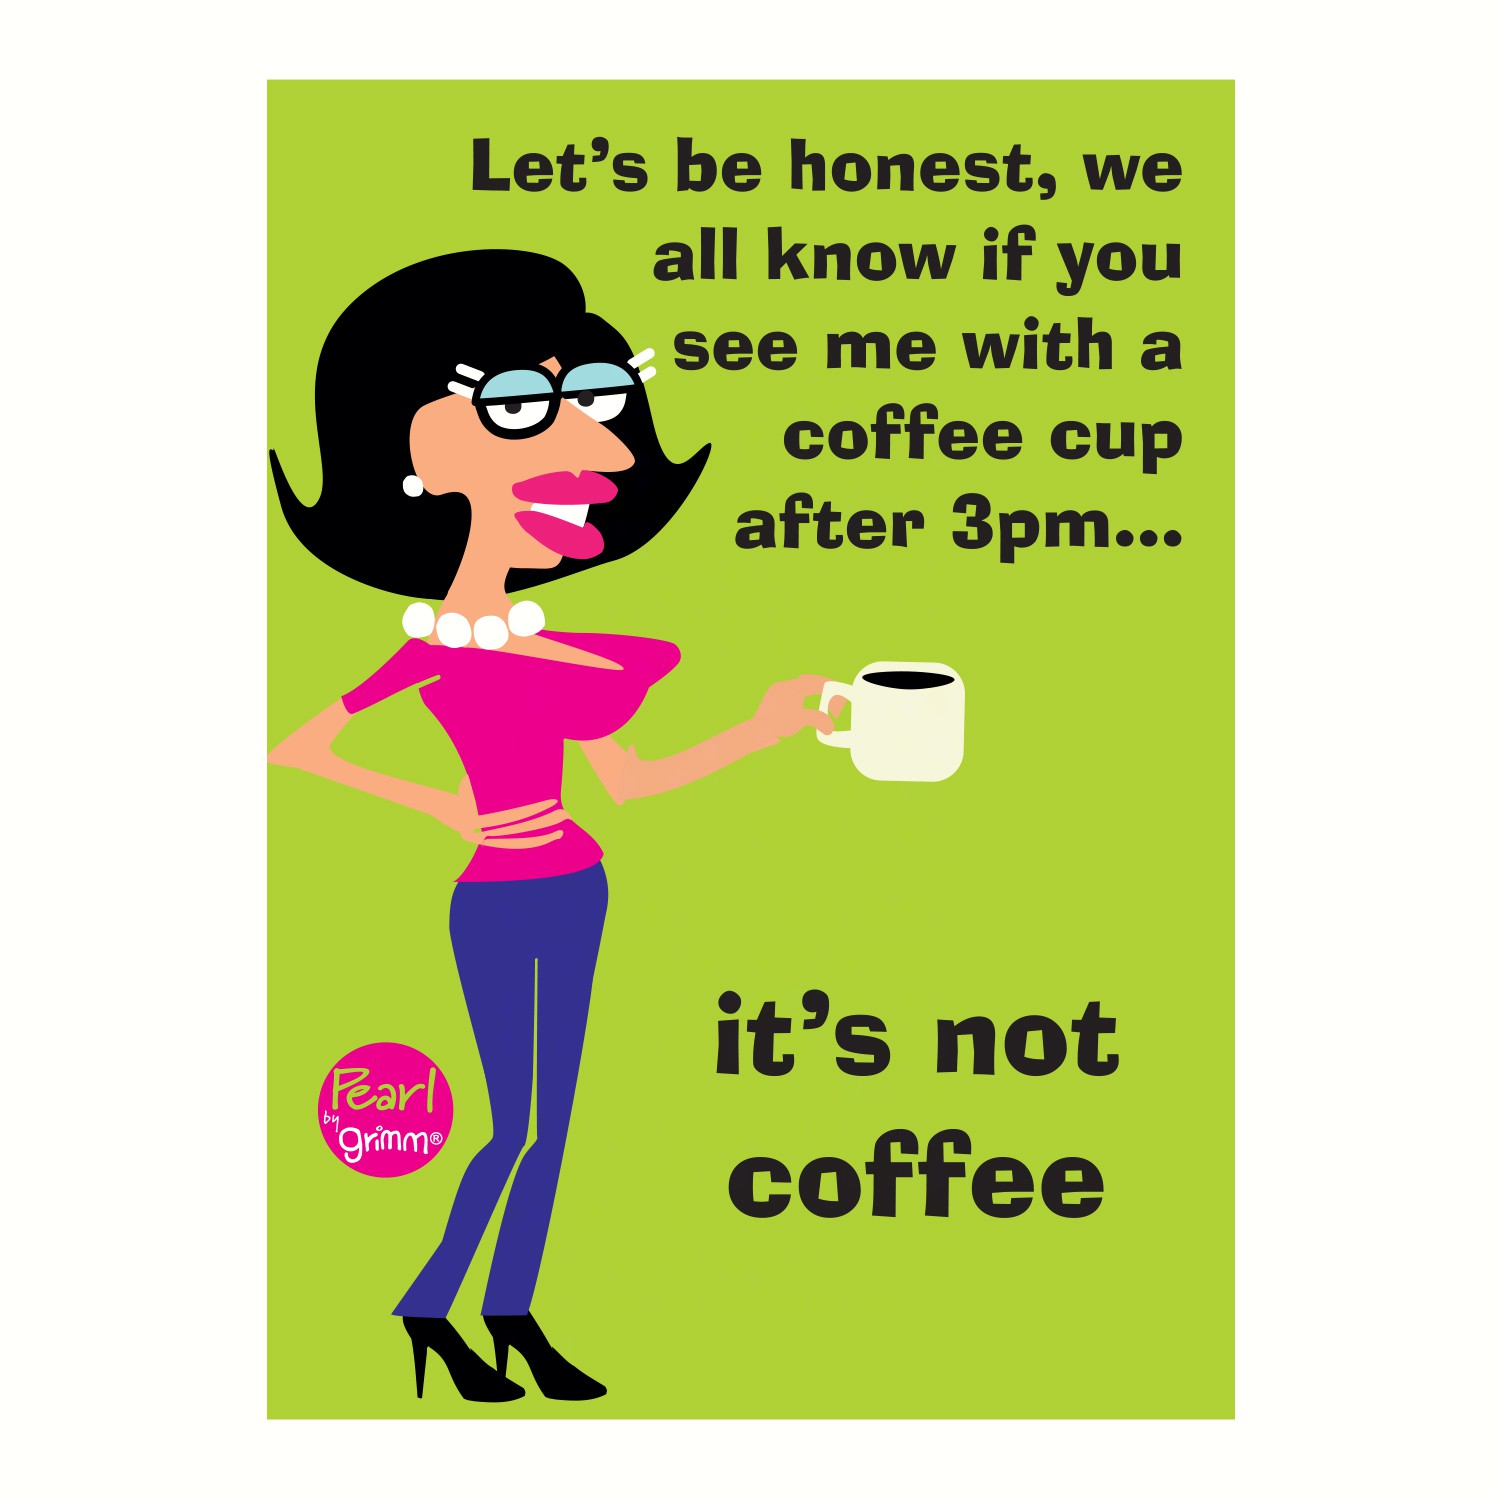 Magnet, Humorous Sayings, Let's be honest, we all know if you see me with a coffee cup after 3pm...